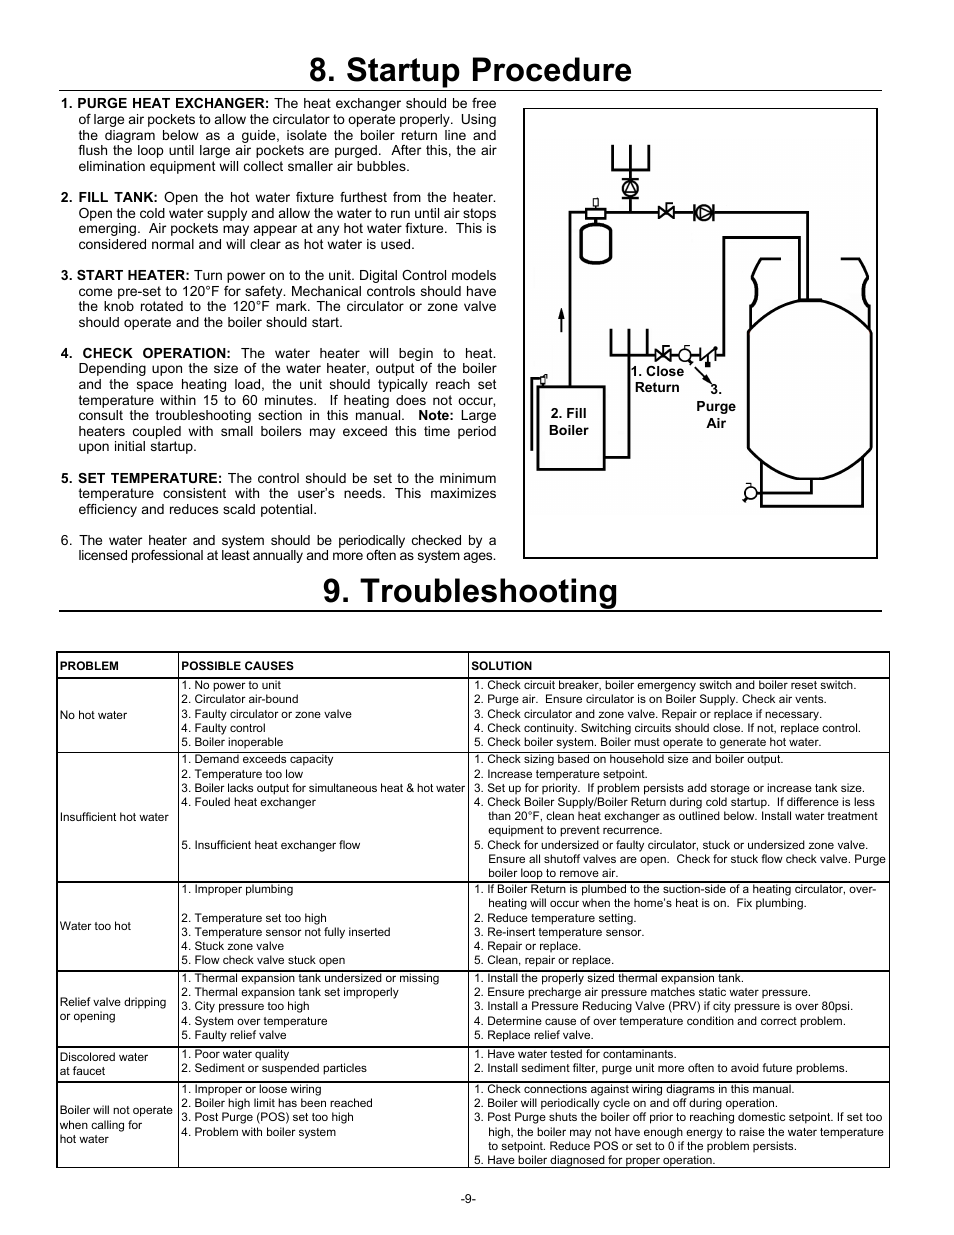 Startup Procedure 9 Troubleshooting Amtrol Hydromax Hm 41l User A Hot Water Zone Valve Wiring Diagram Manual Page 12